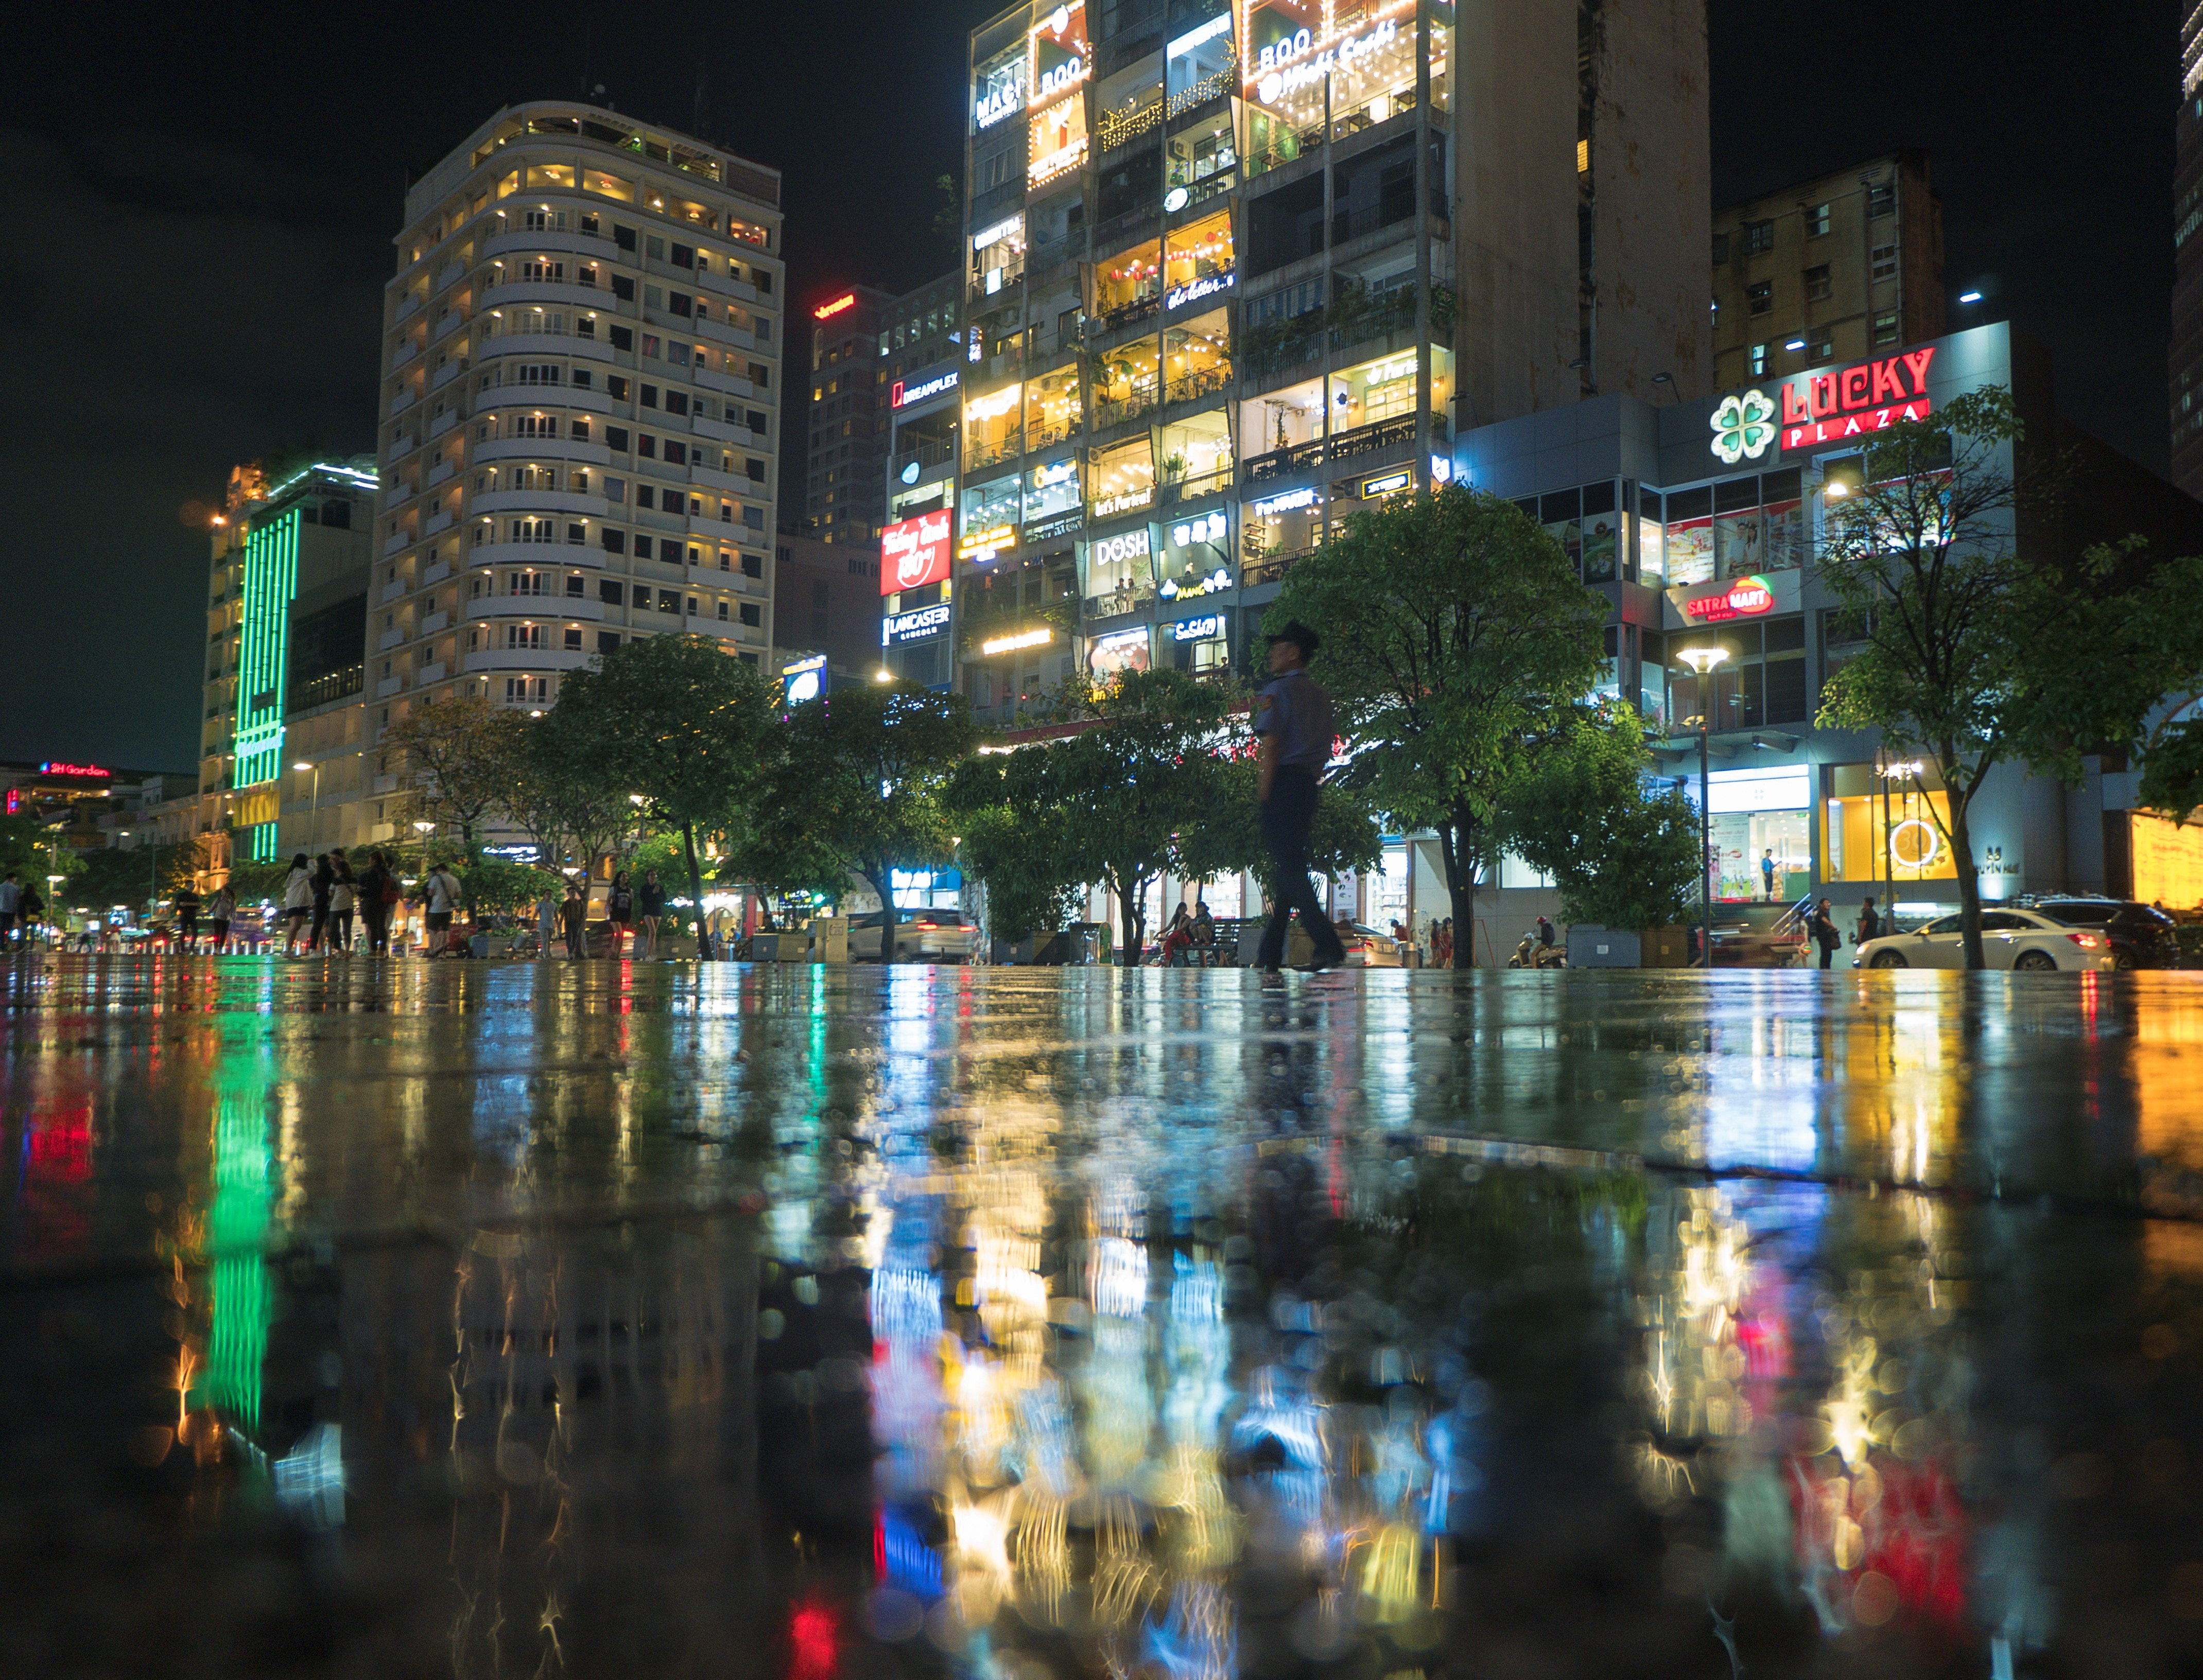 Free stock photo of after the rain, city center, city life